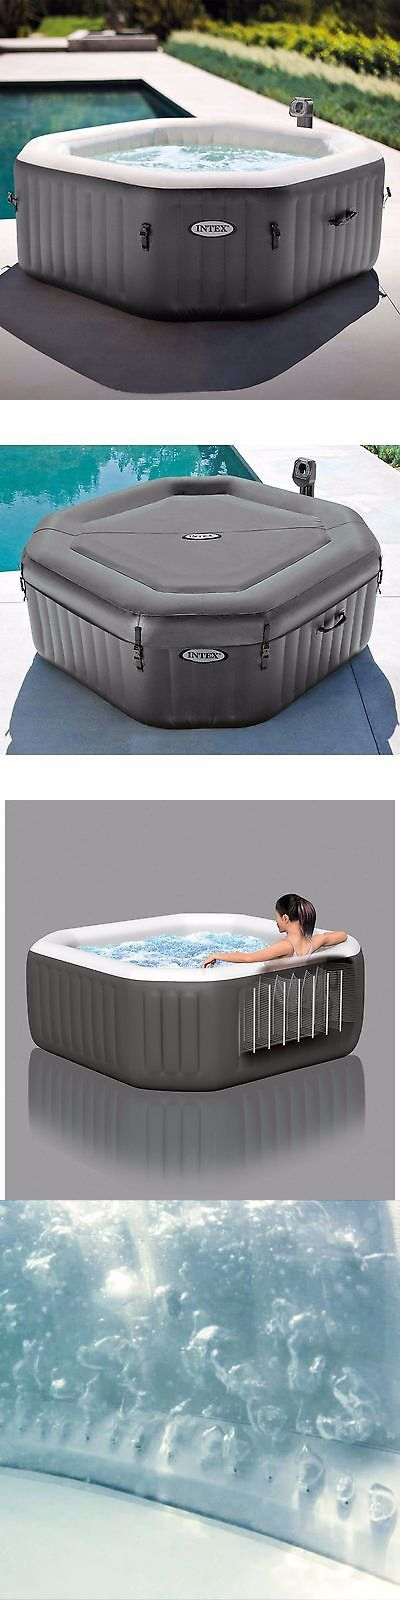 Spas and Hot Tubs 84211: Inflatable Hot Tub Spa Intex 4 Person Portable Jacuzzi Heated Bubble Massage -> BUY IT NOW ONLY: $461.99 on eBay!